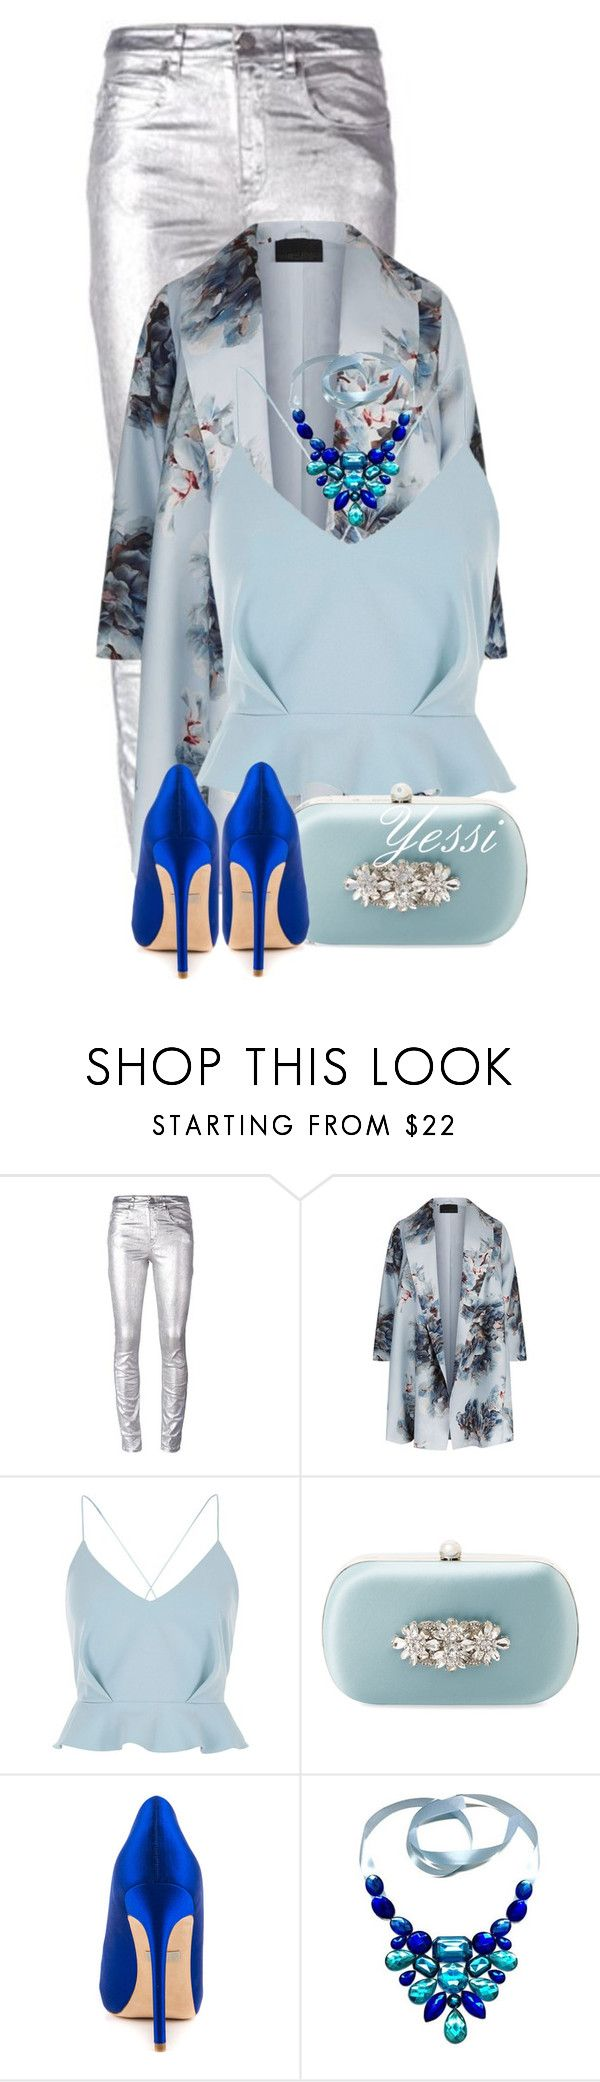 """""""~ Girls Night Out Summer  ~"""" by pretty-fashion-designs ❤ liked on Polyvore featuring Étoile Isabel Marant, Marina Rinaldi, River Island, Badgley Mischka and plus size clothing"""